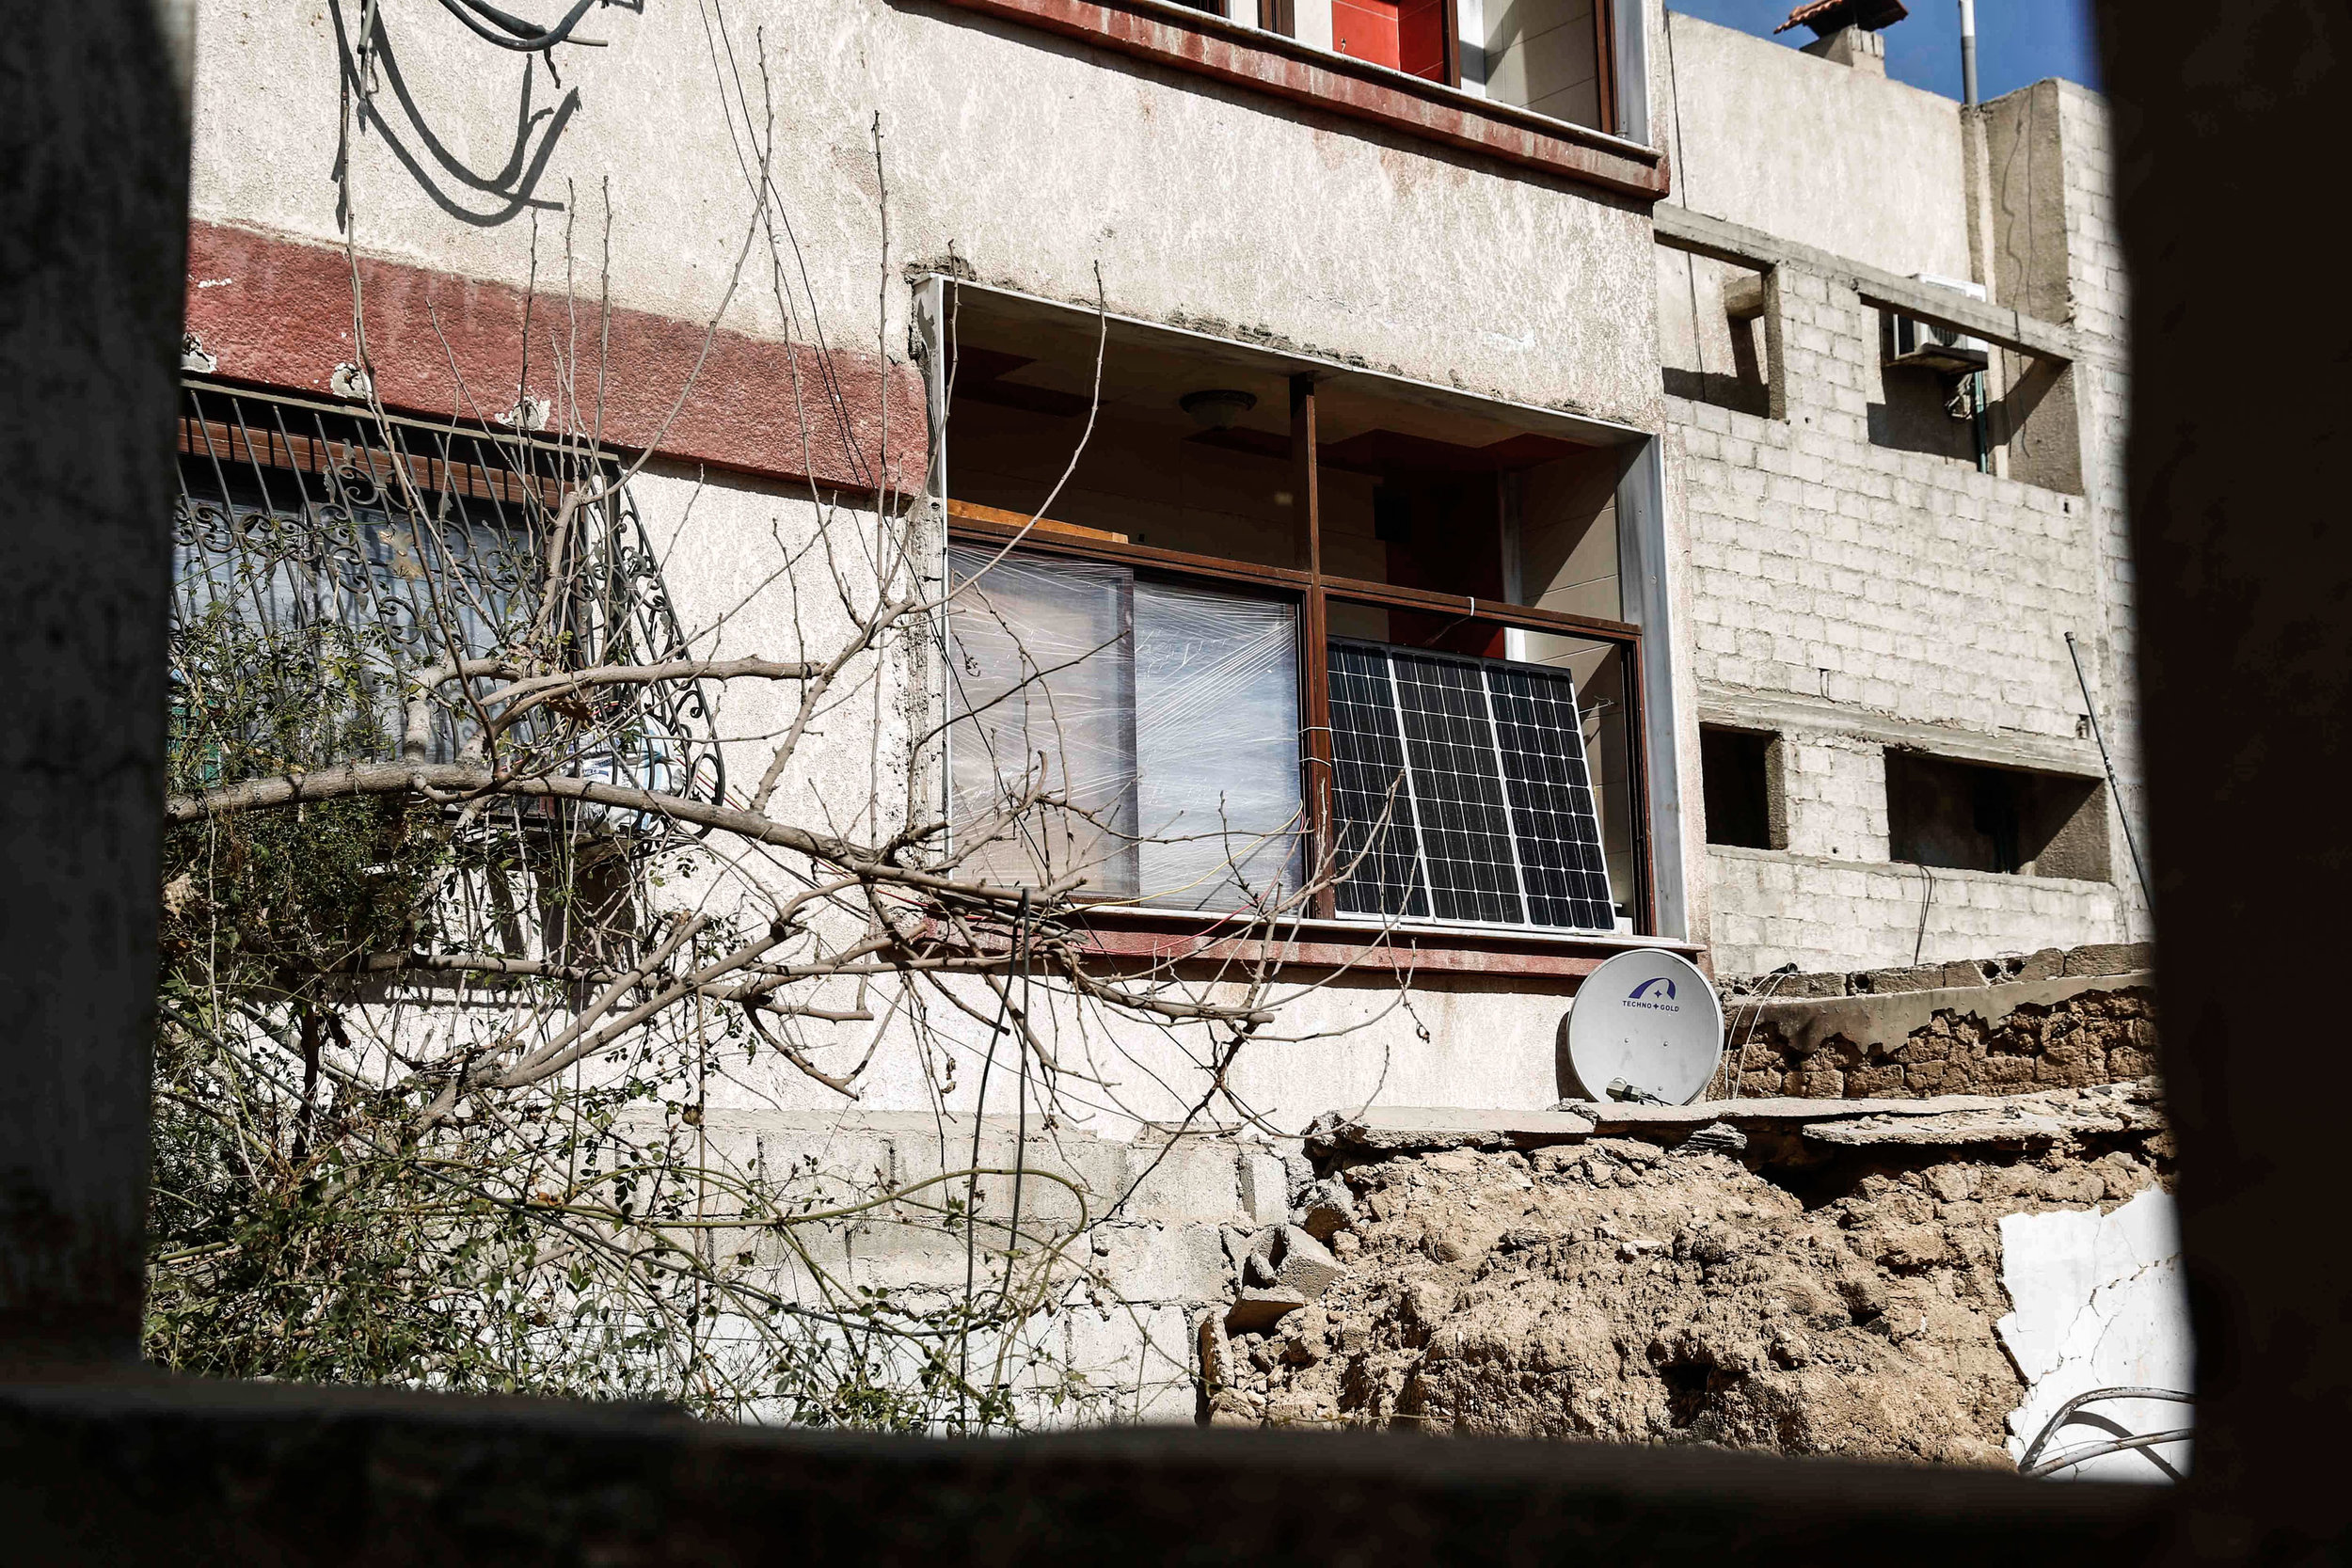 - People put solar chargers instead of the damaged window in the Syrian city of Douma.